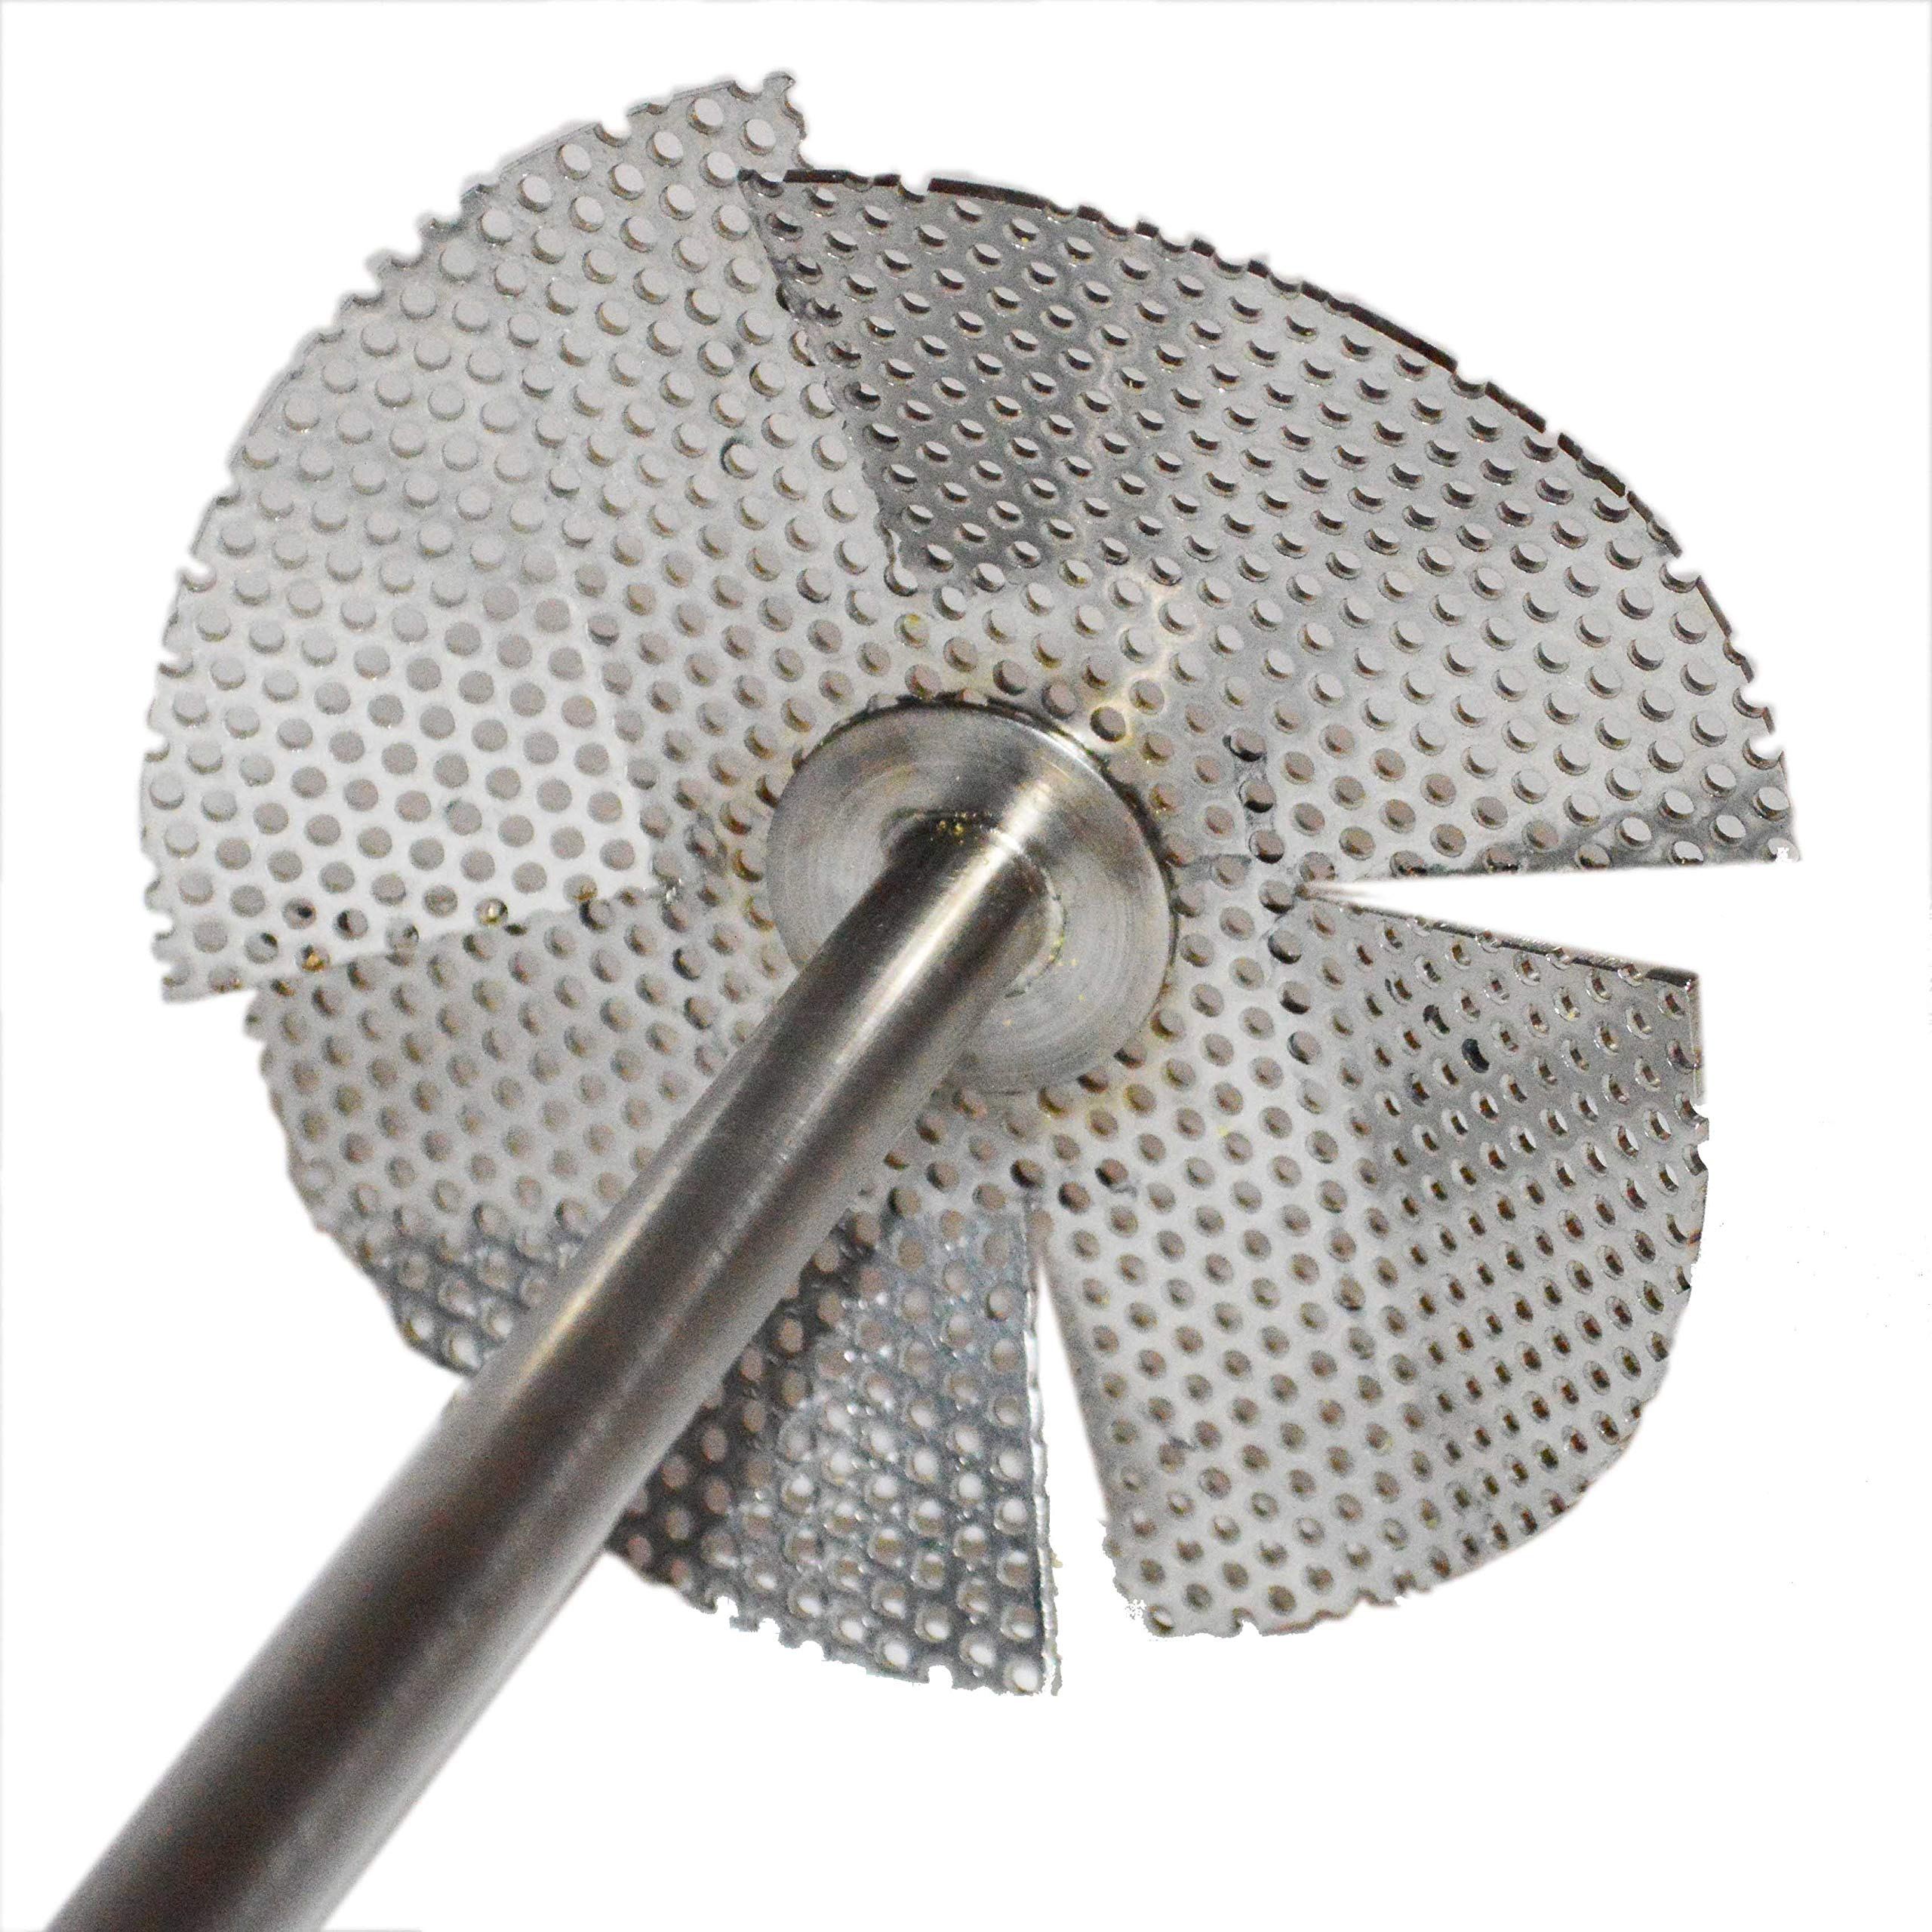 Jaybird Stainless Steel''Whirlpool Master'' - LONG Version - Beer Brewing Paddle by NorCal Brewing Soutions